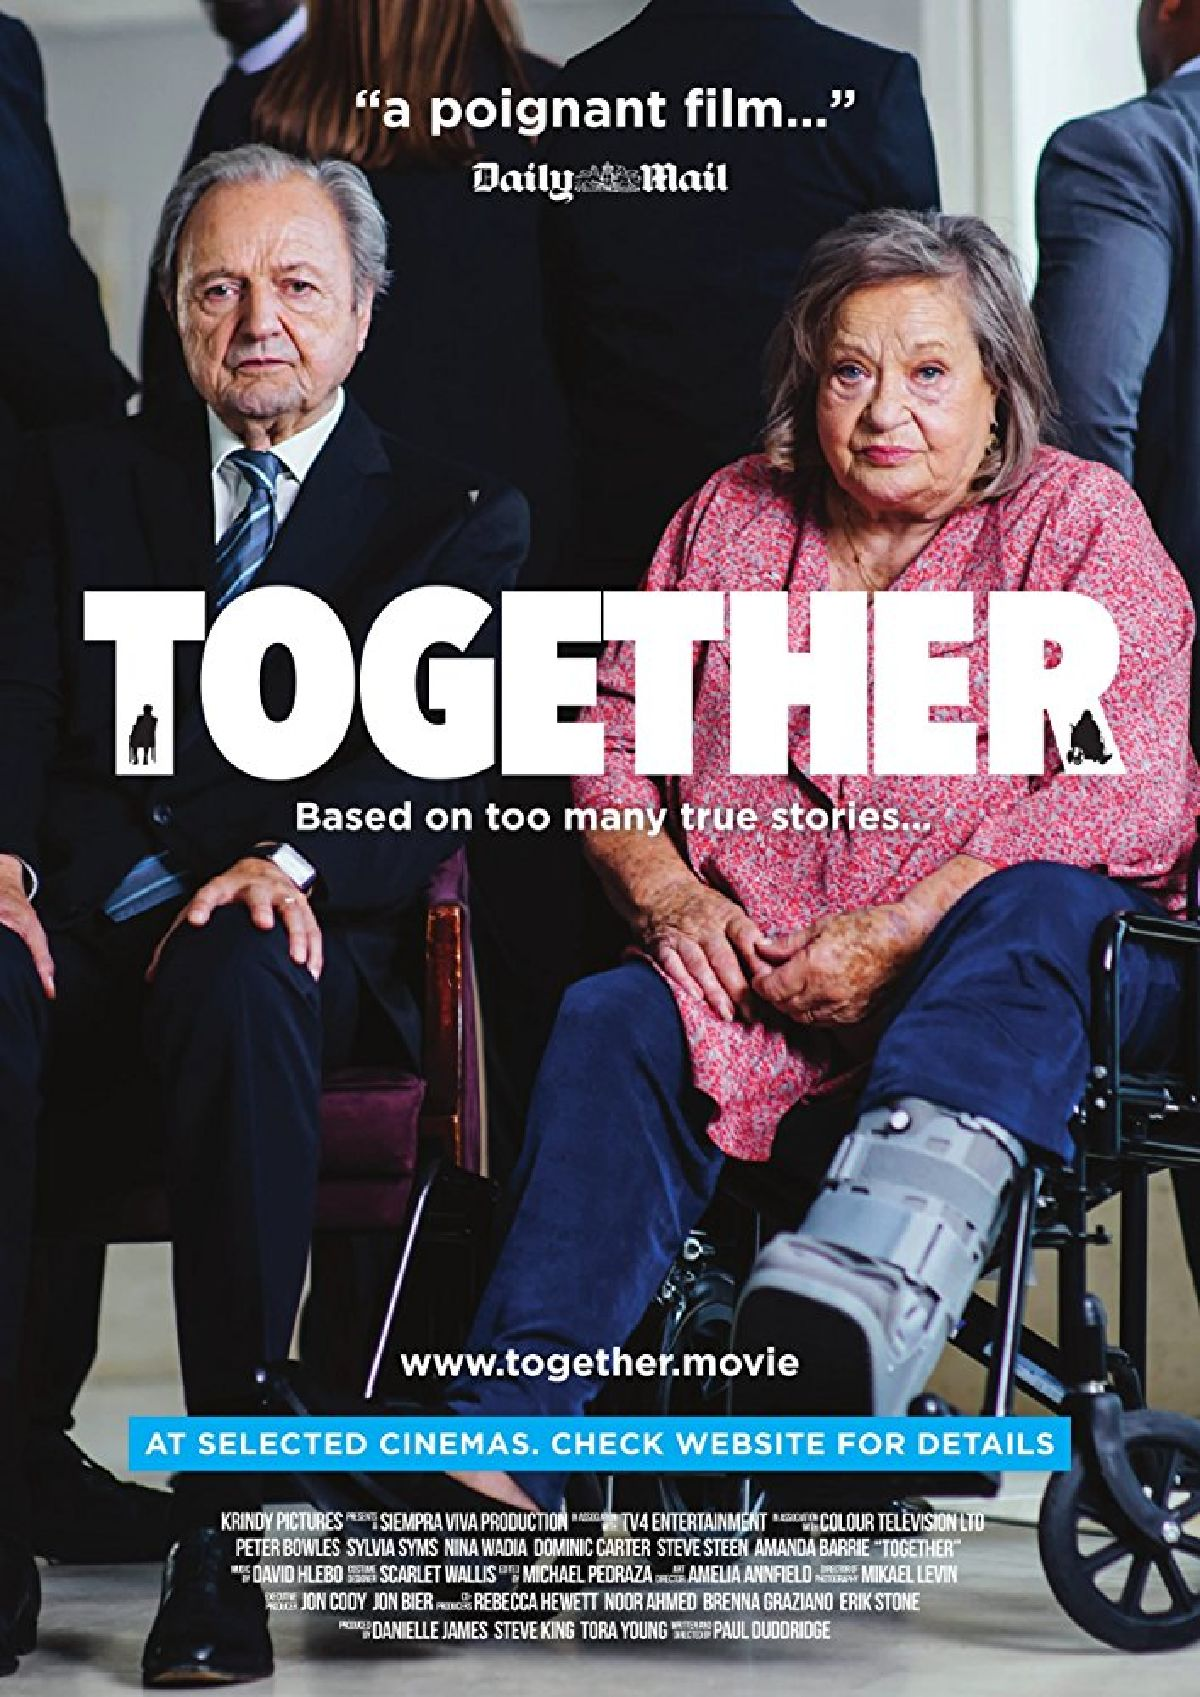 'Together' movie poster